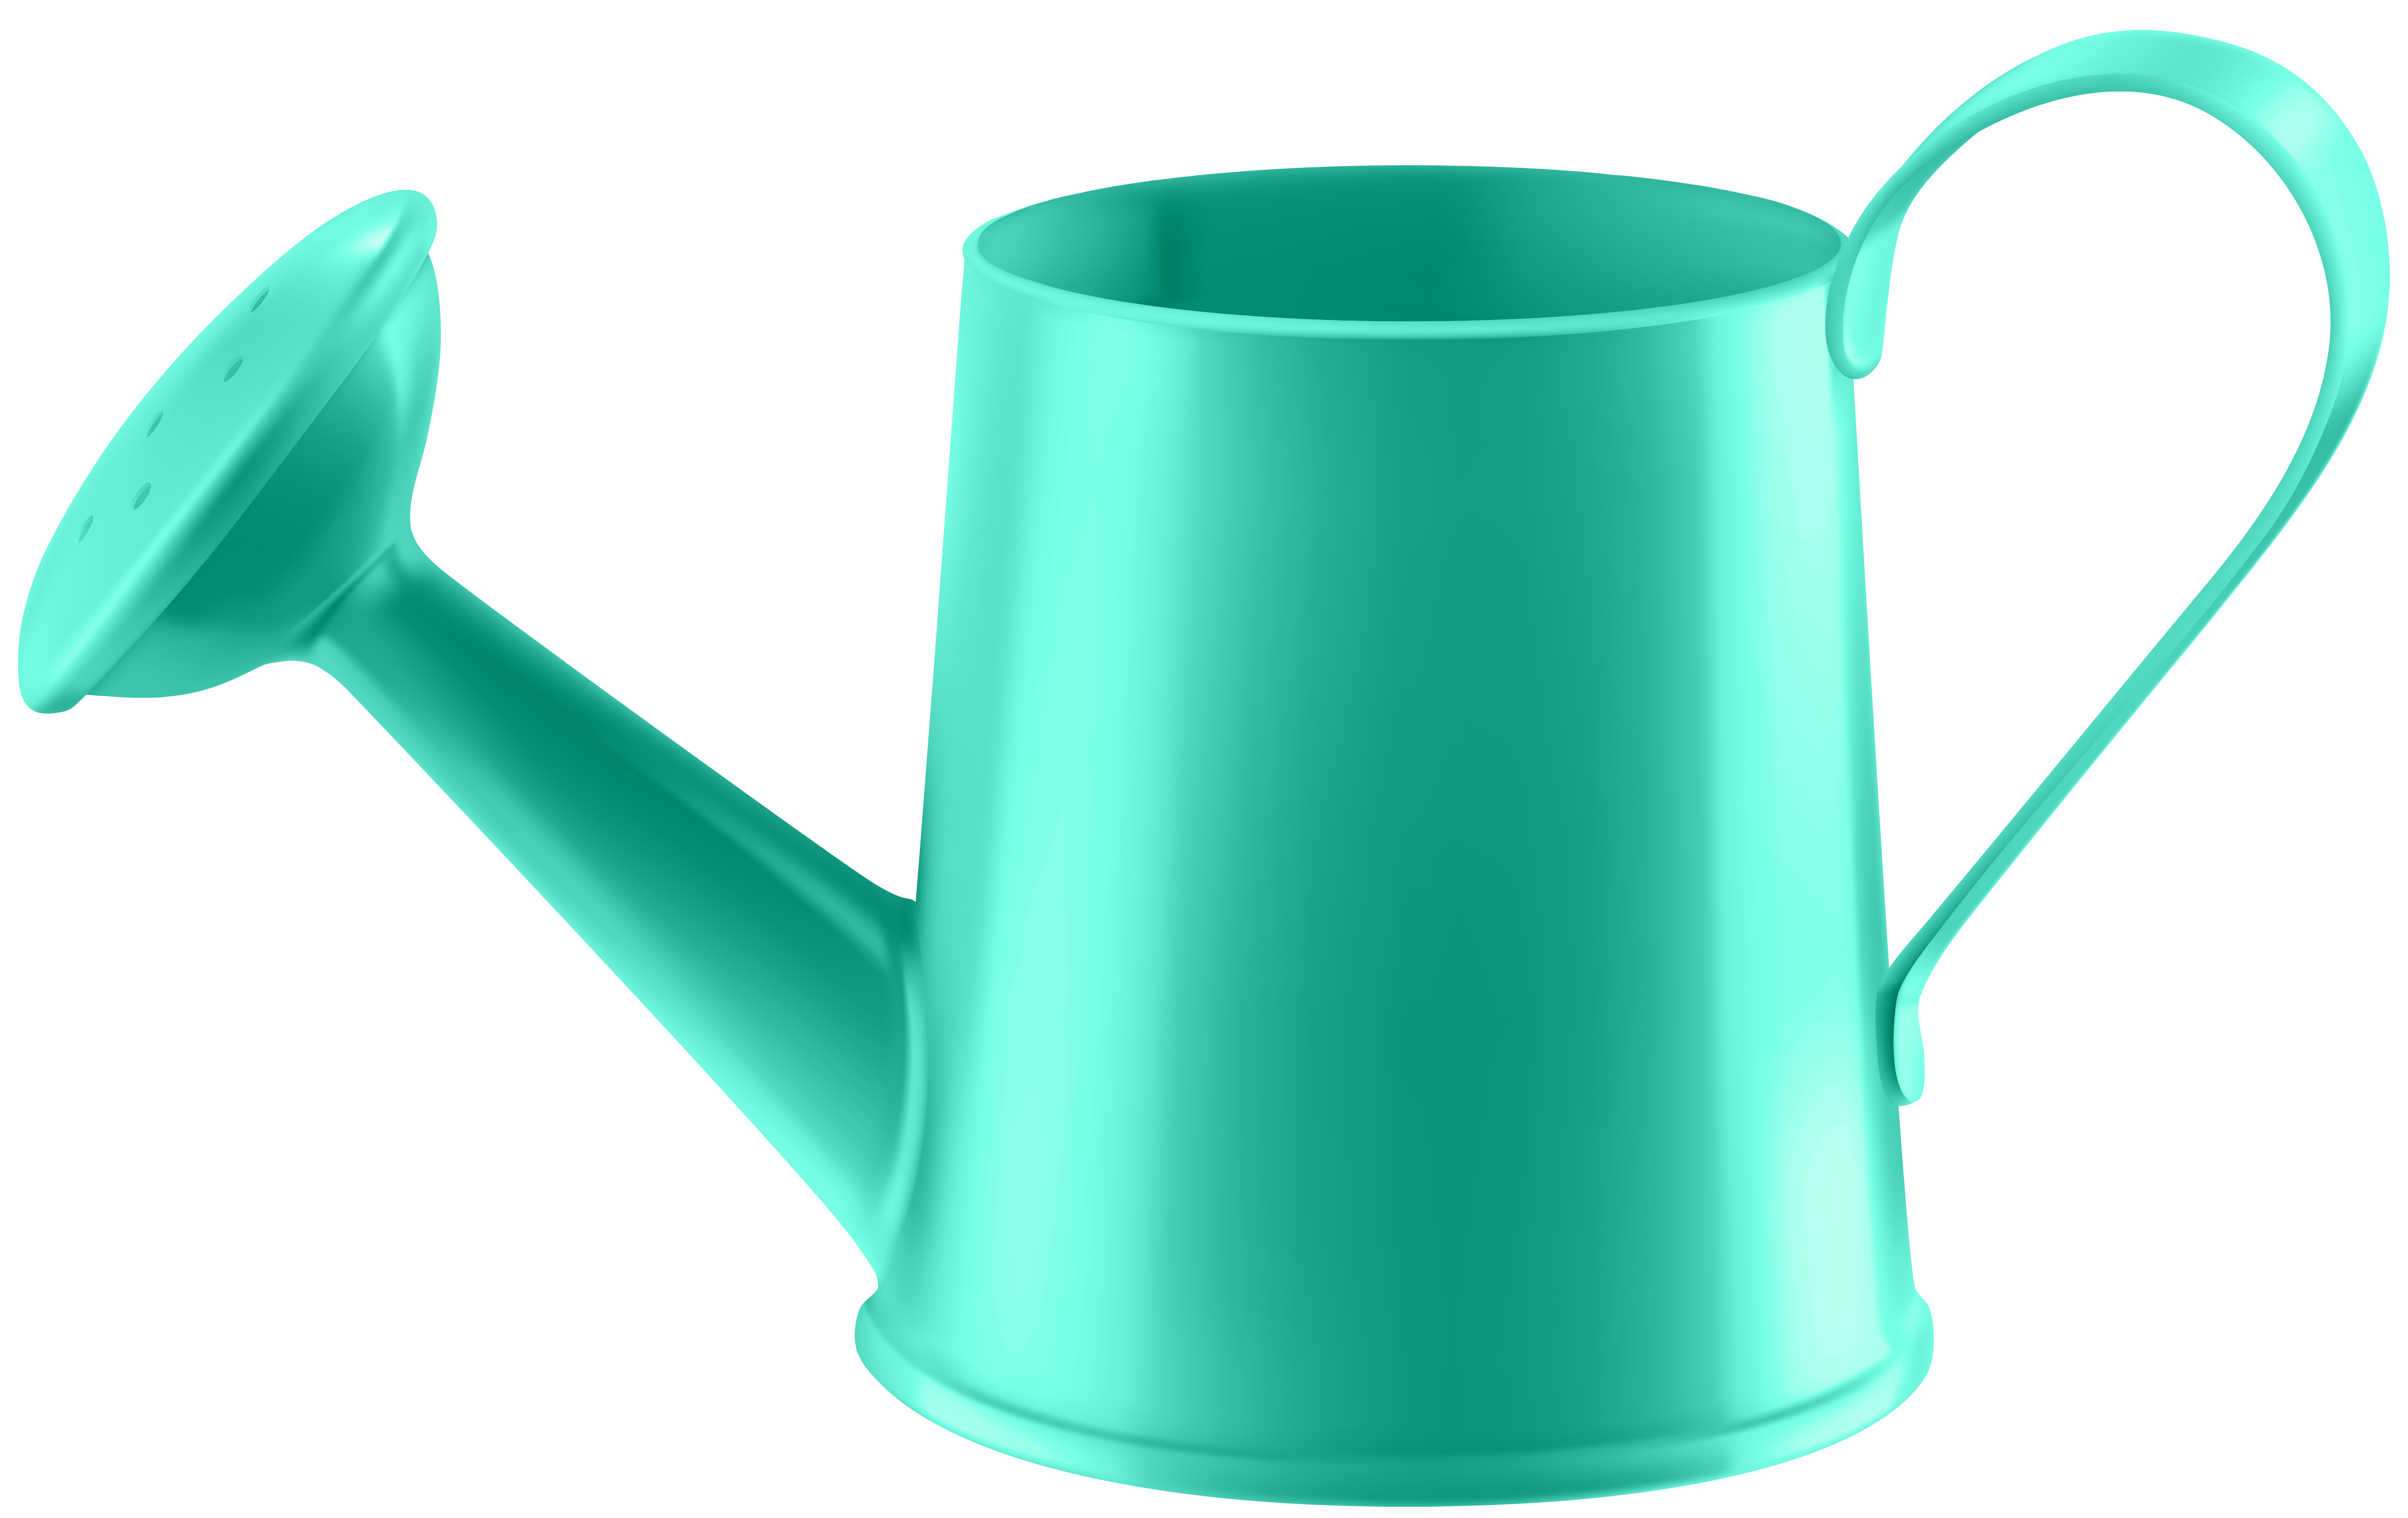 Water Can Transparent PNG Clip Art.